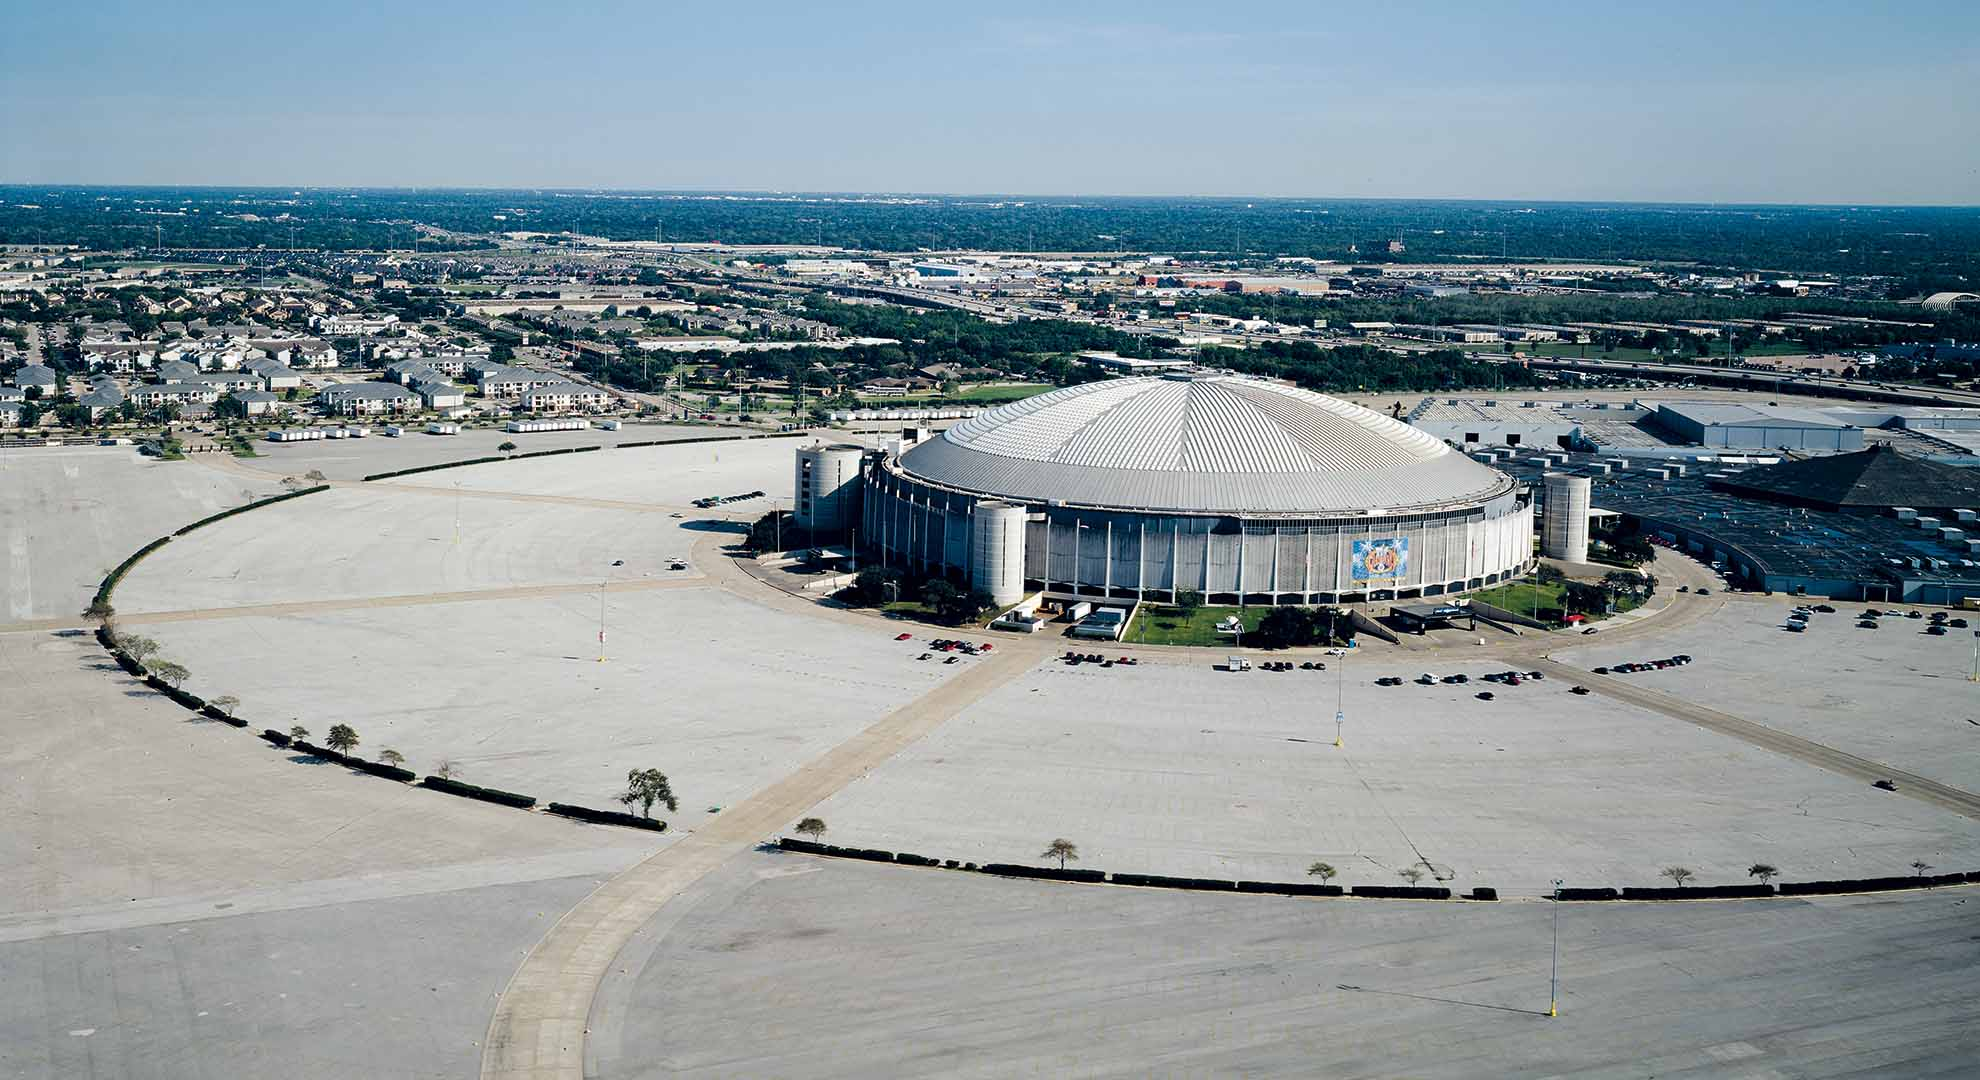 The air-conditioned Astrodome is a modern stadium in Houston